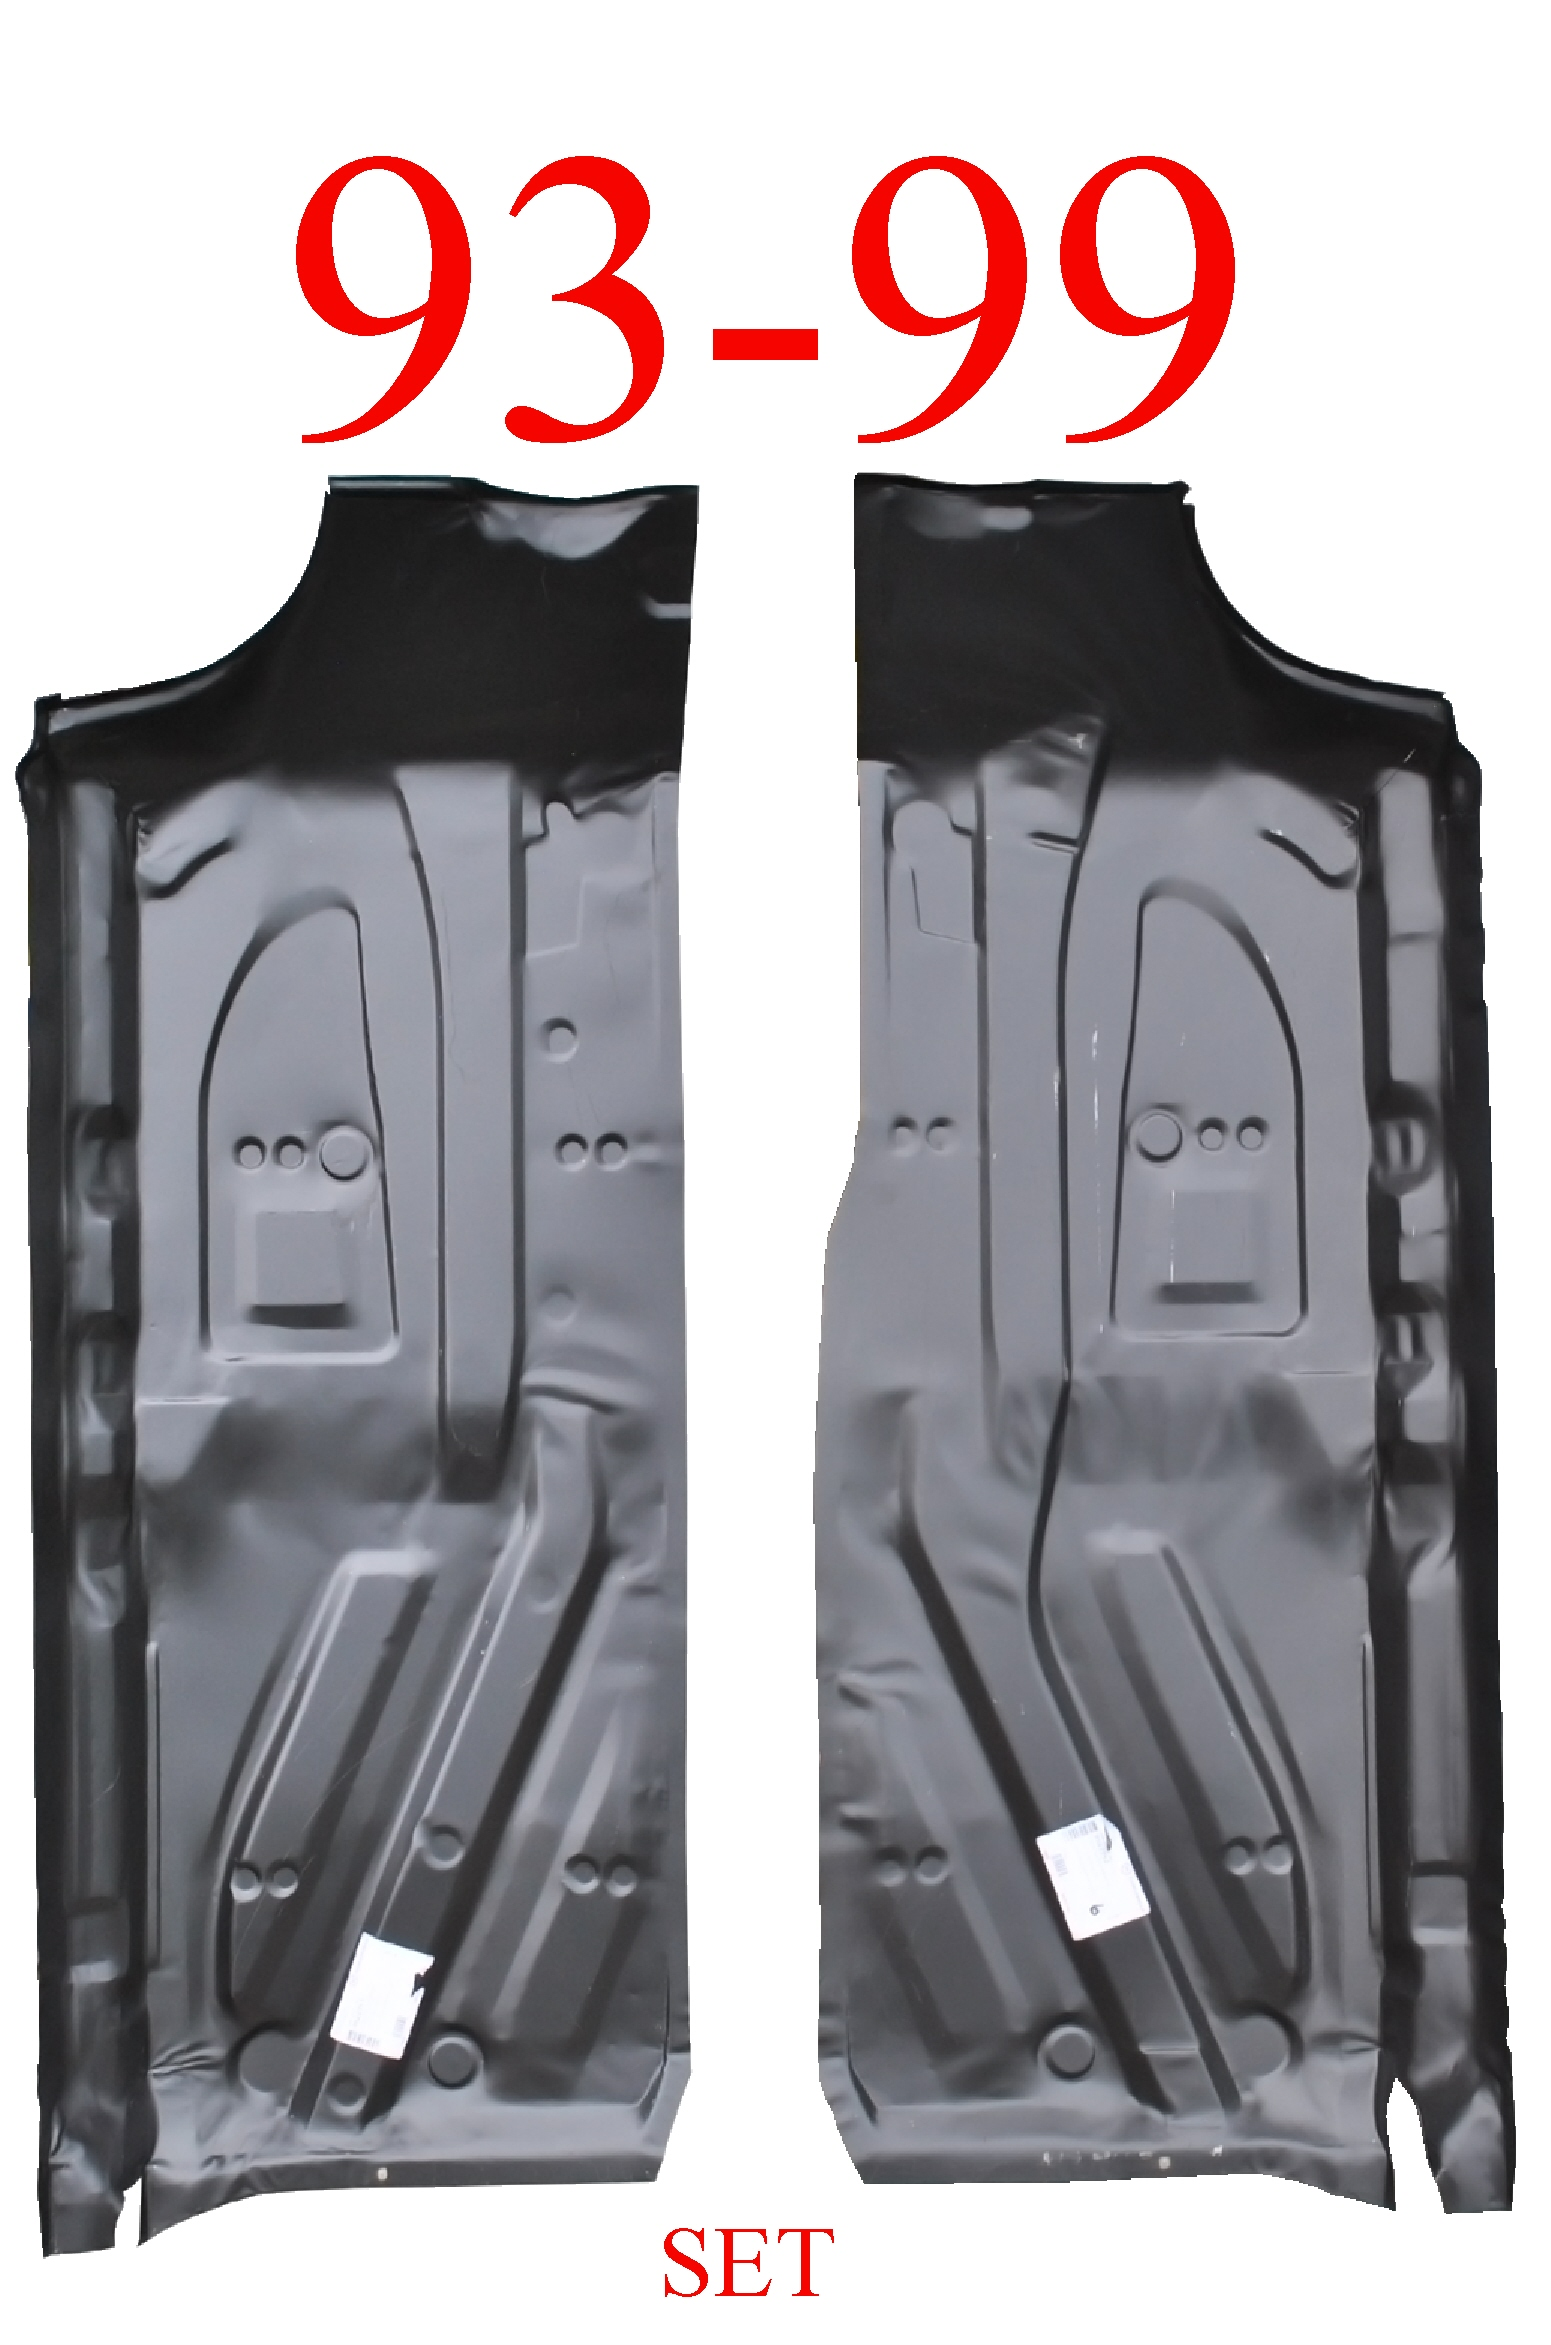 93-99 MK3 Jetta Golf Full Length Floor Pan Set